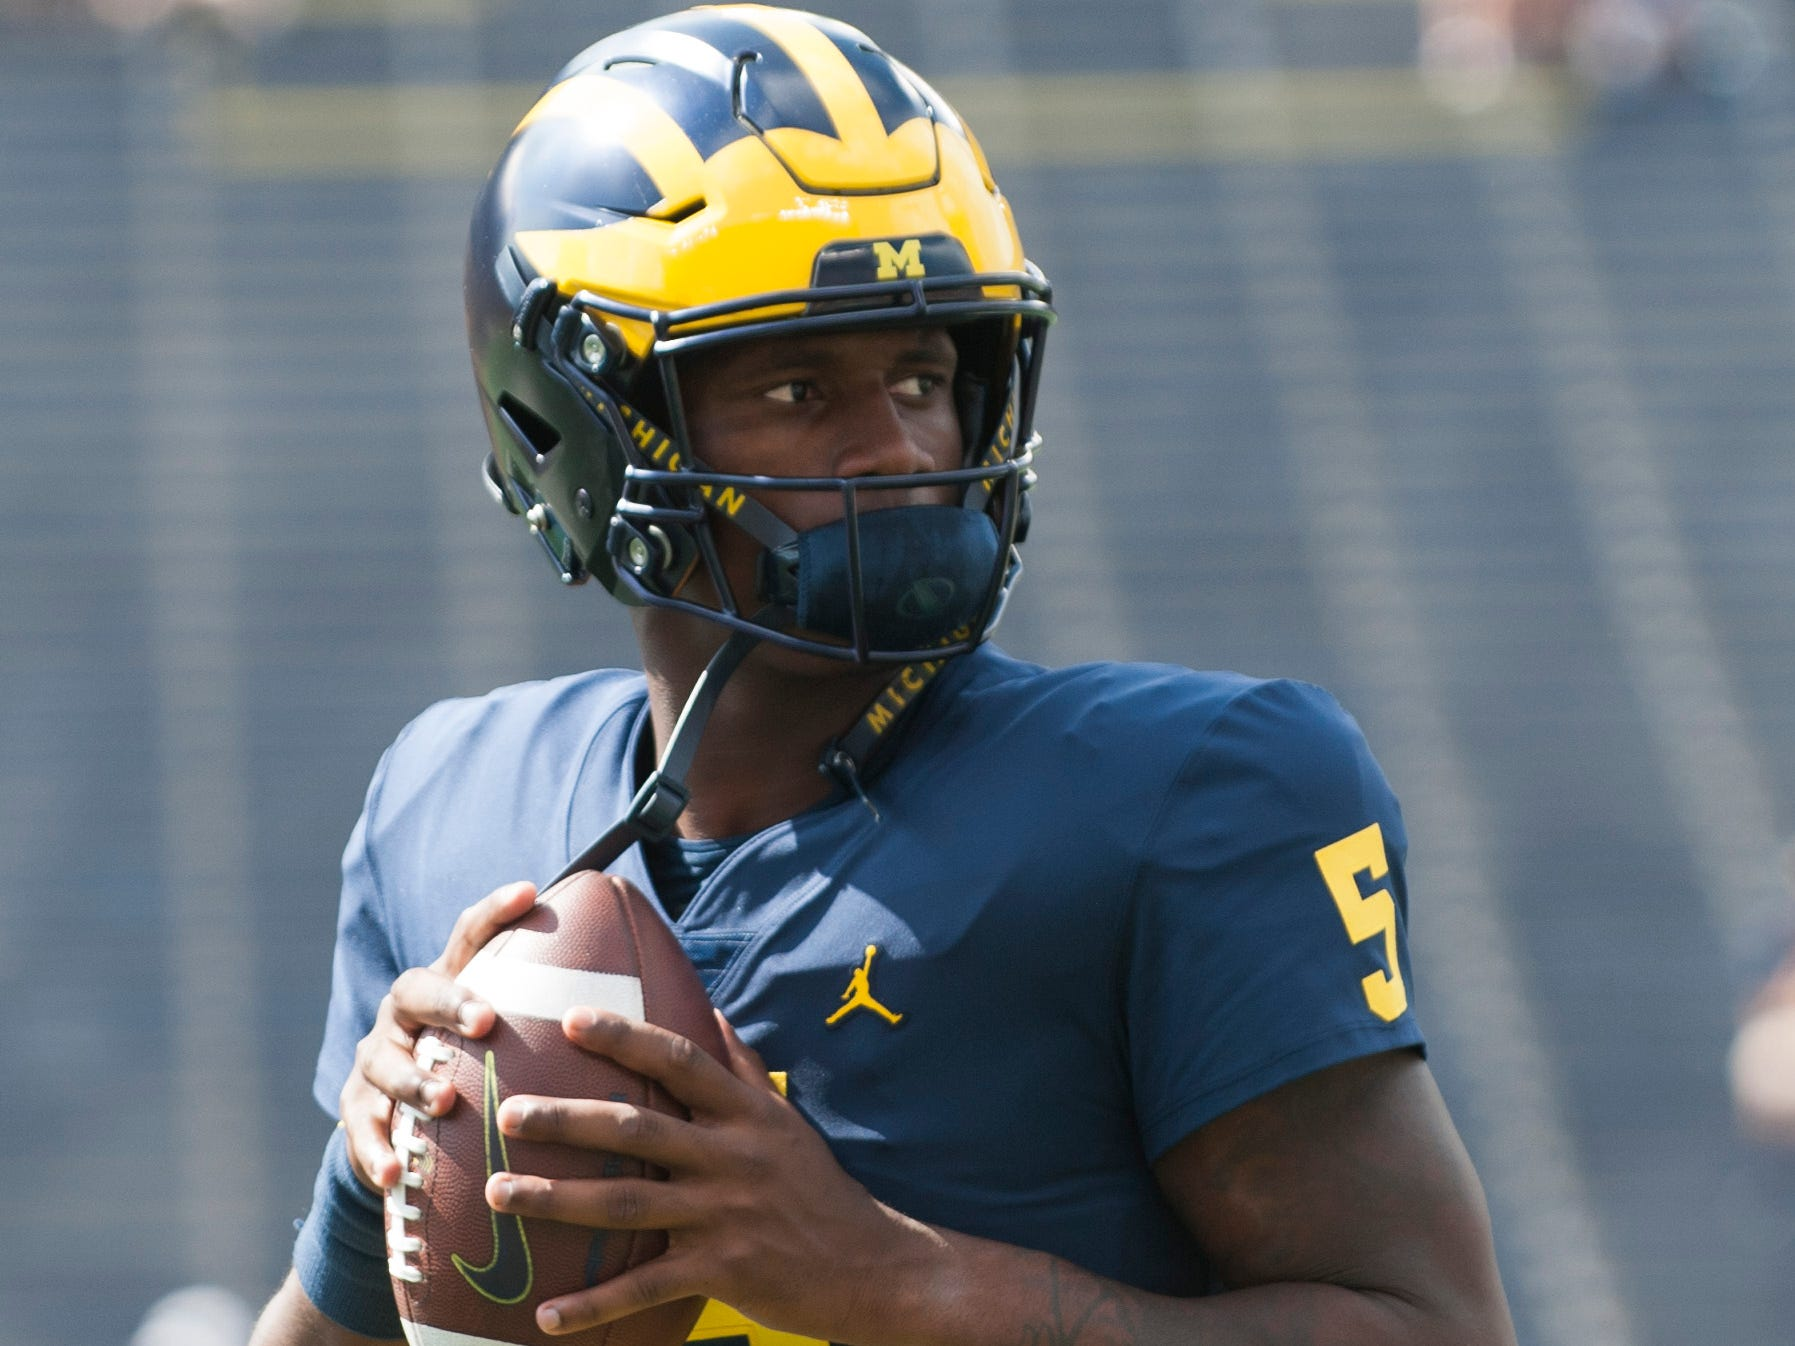 Michigan freshman quarterback Joe Milton warms up before the game.